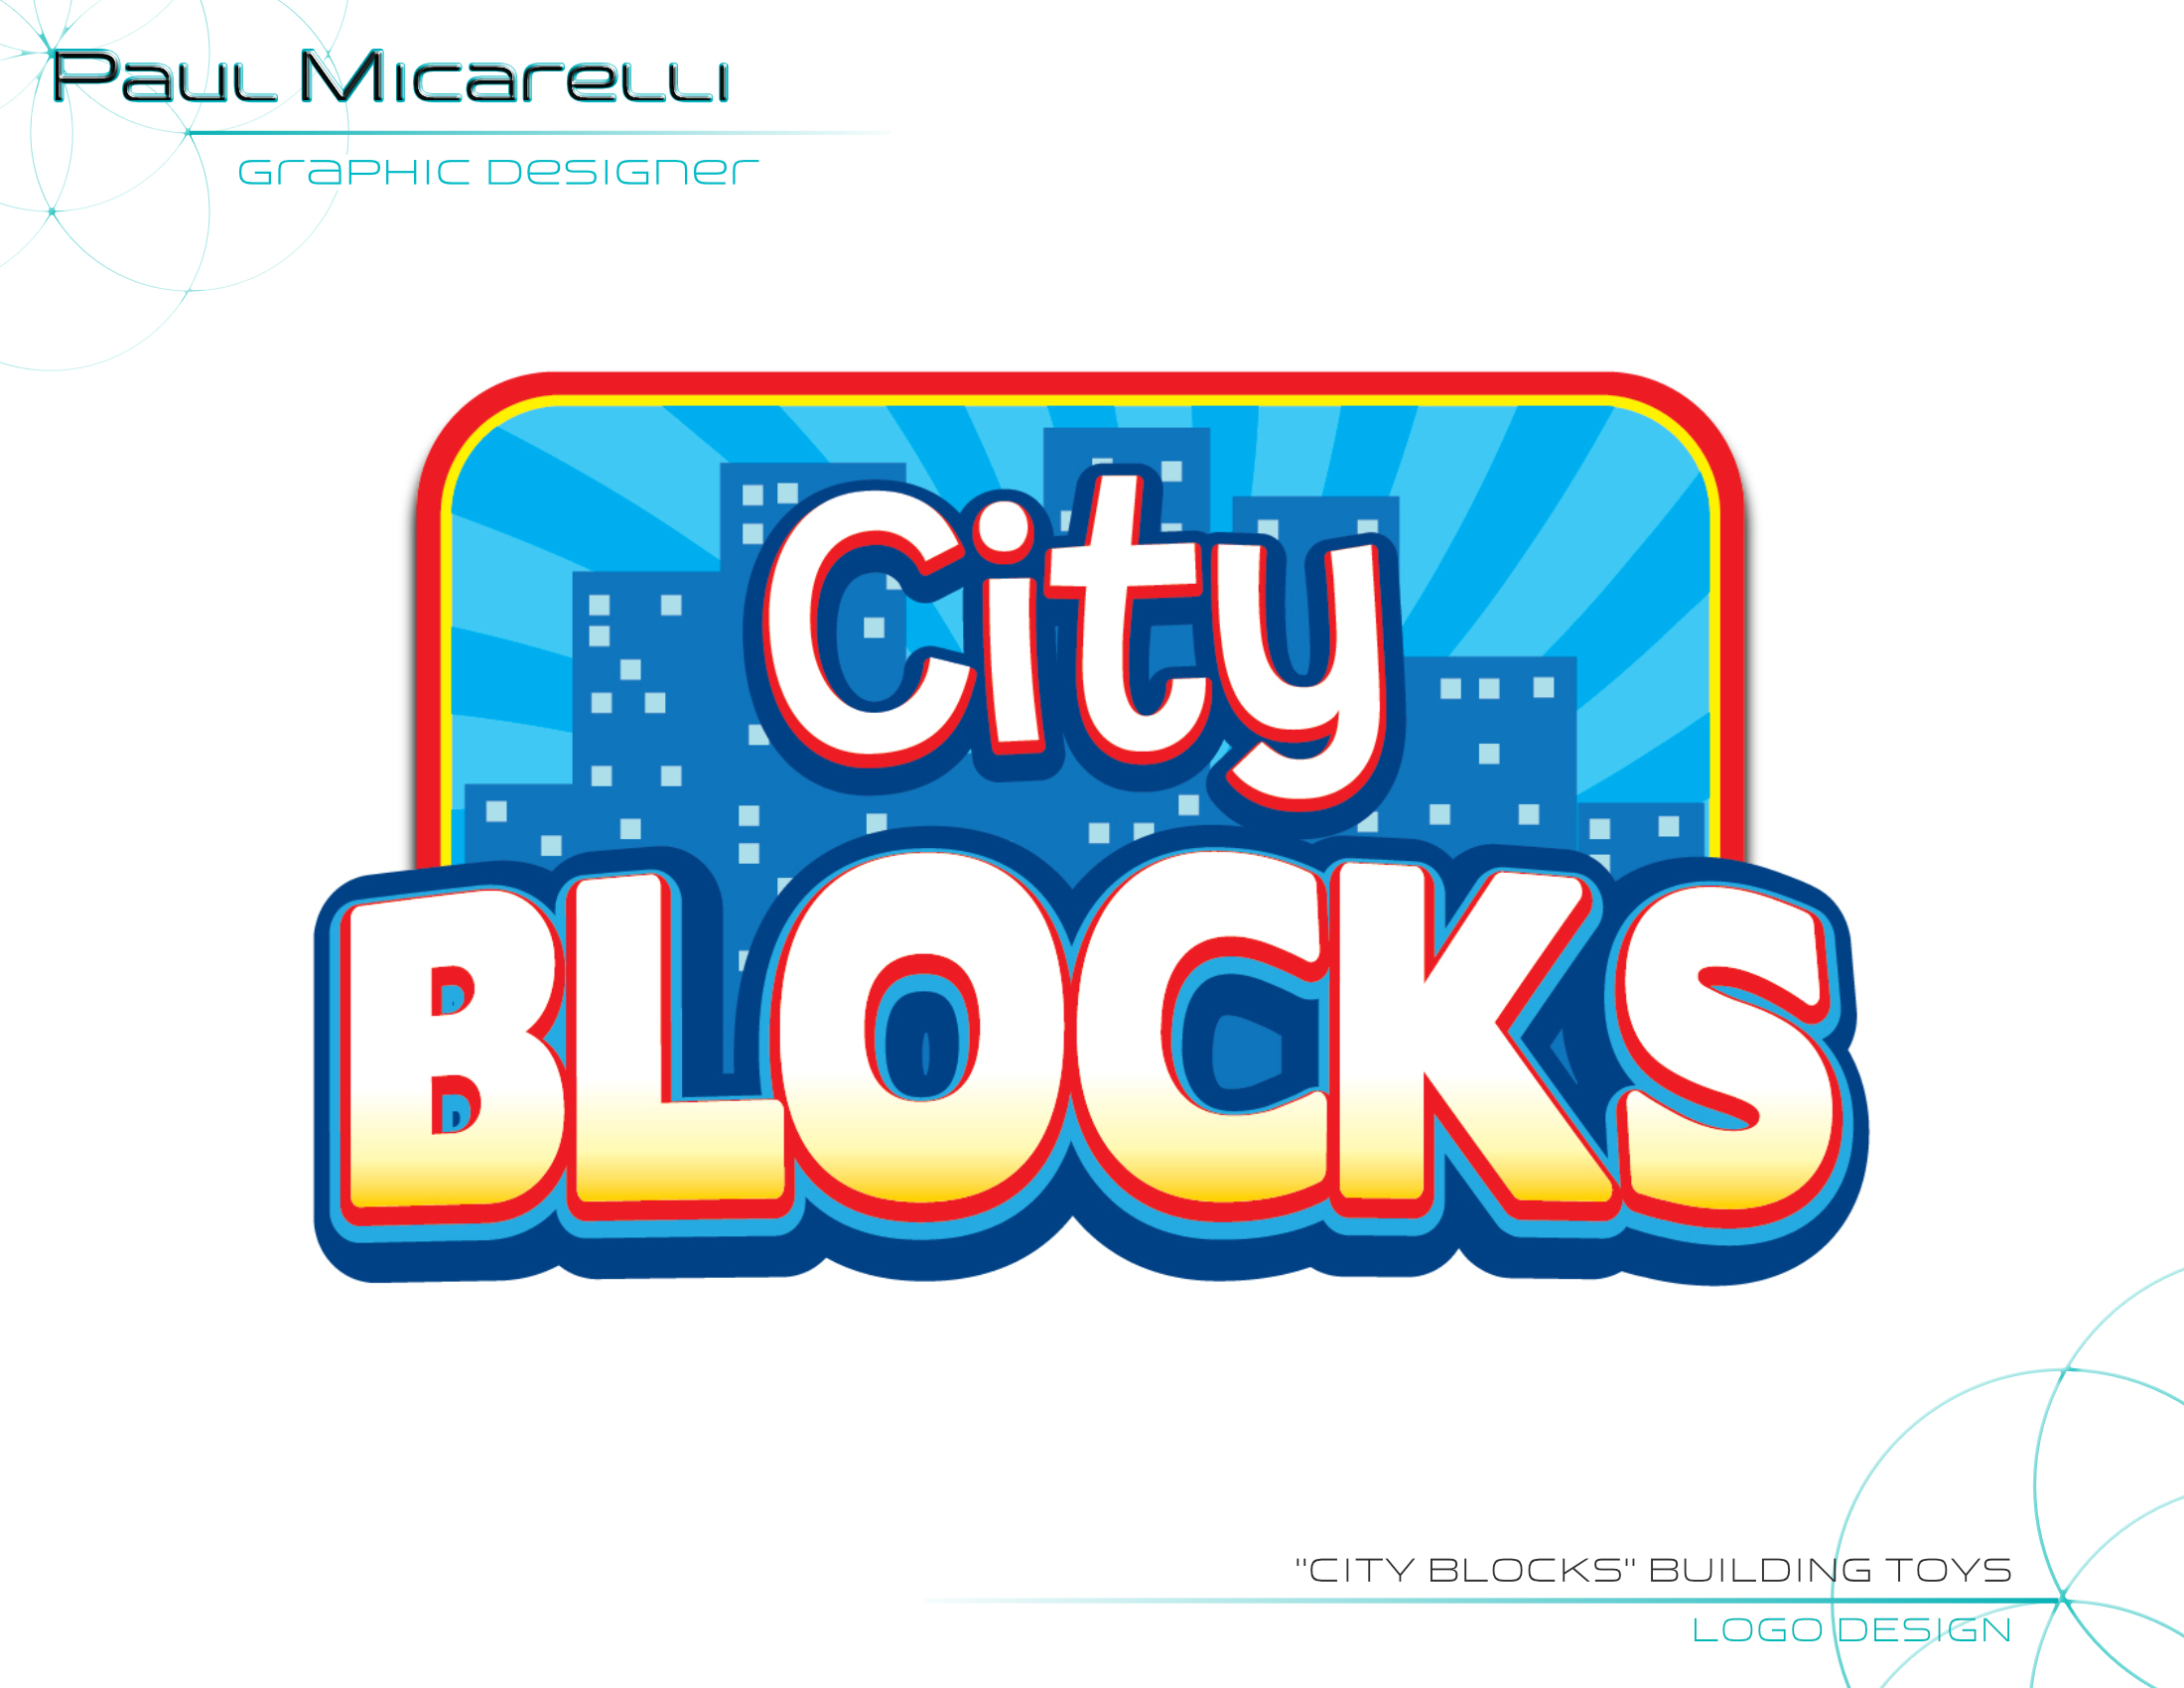 Paul-Micarelli-City Blocks Logo